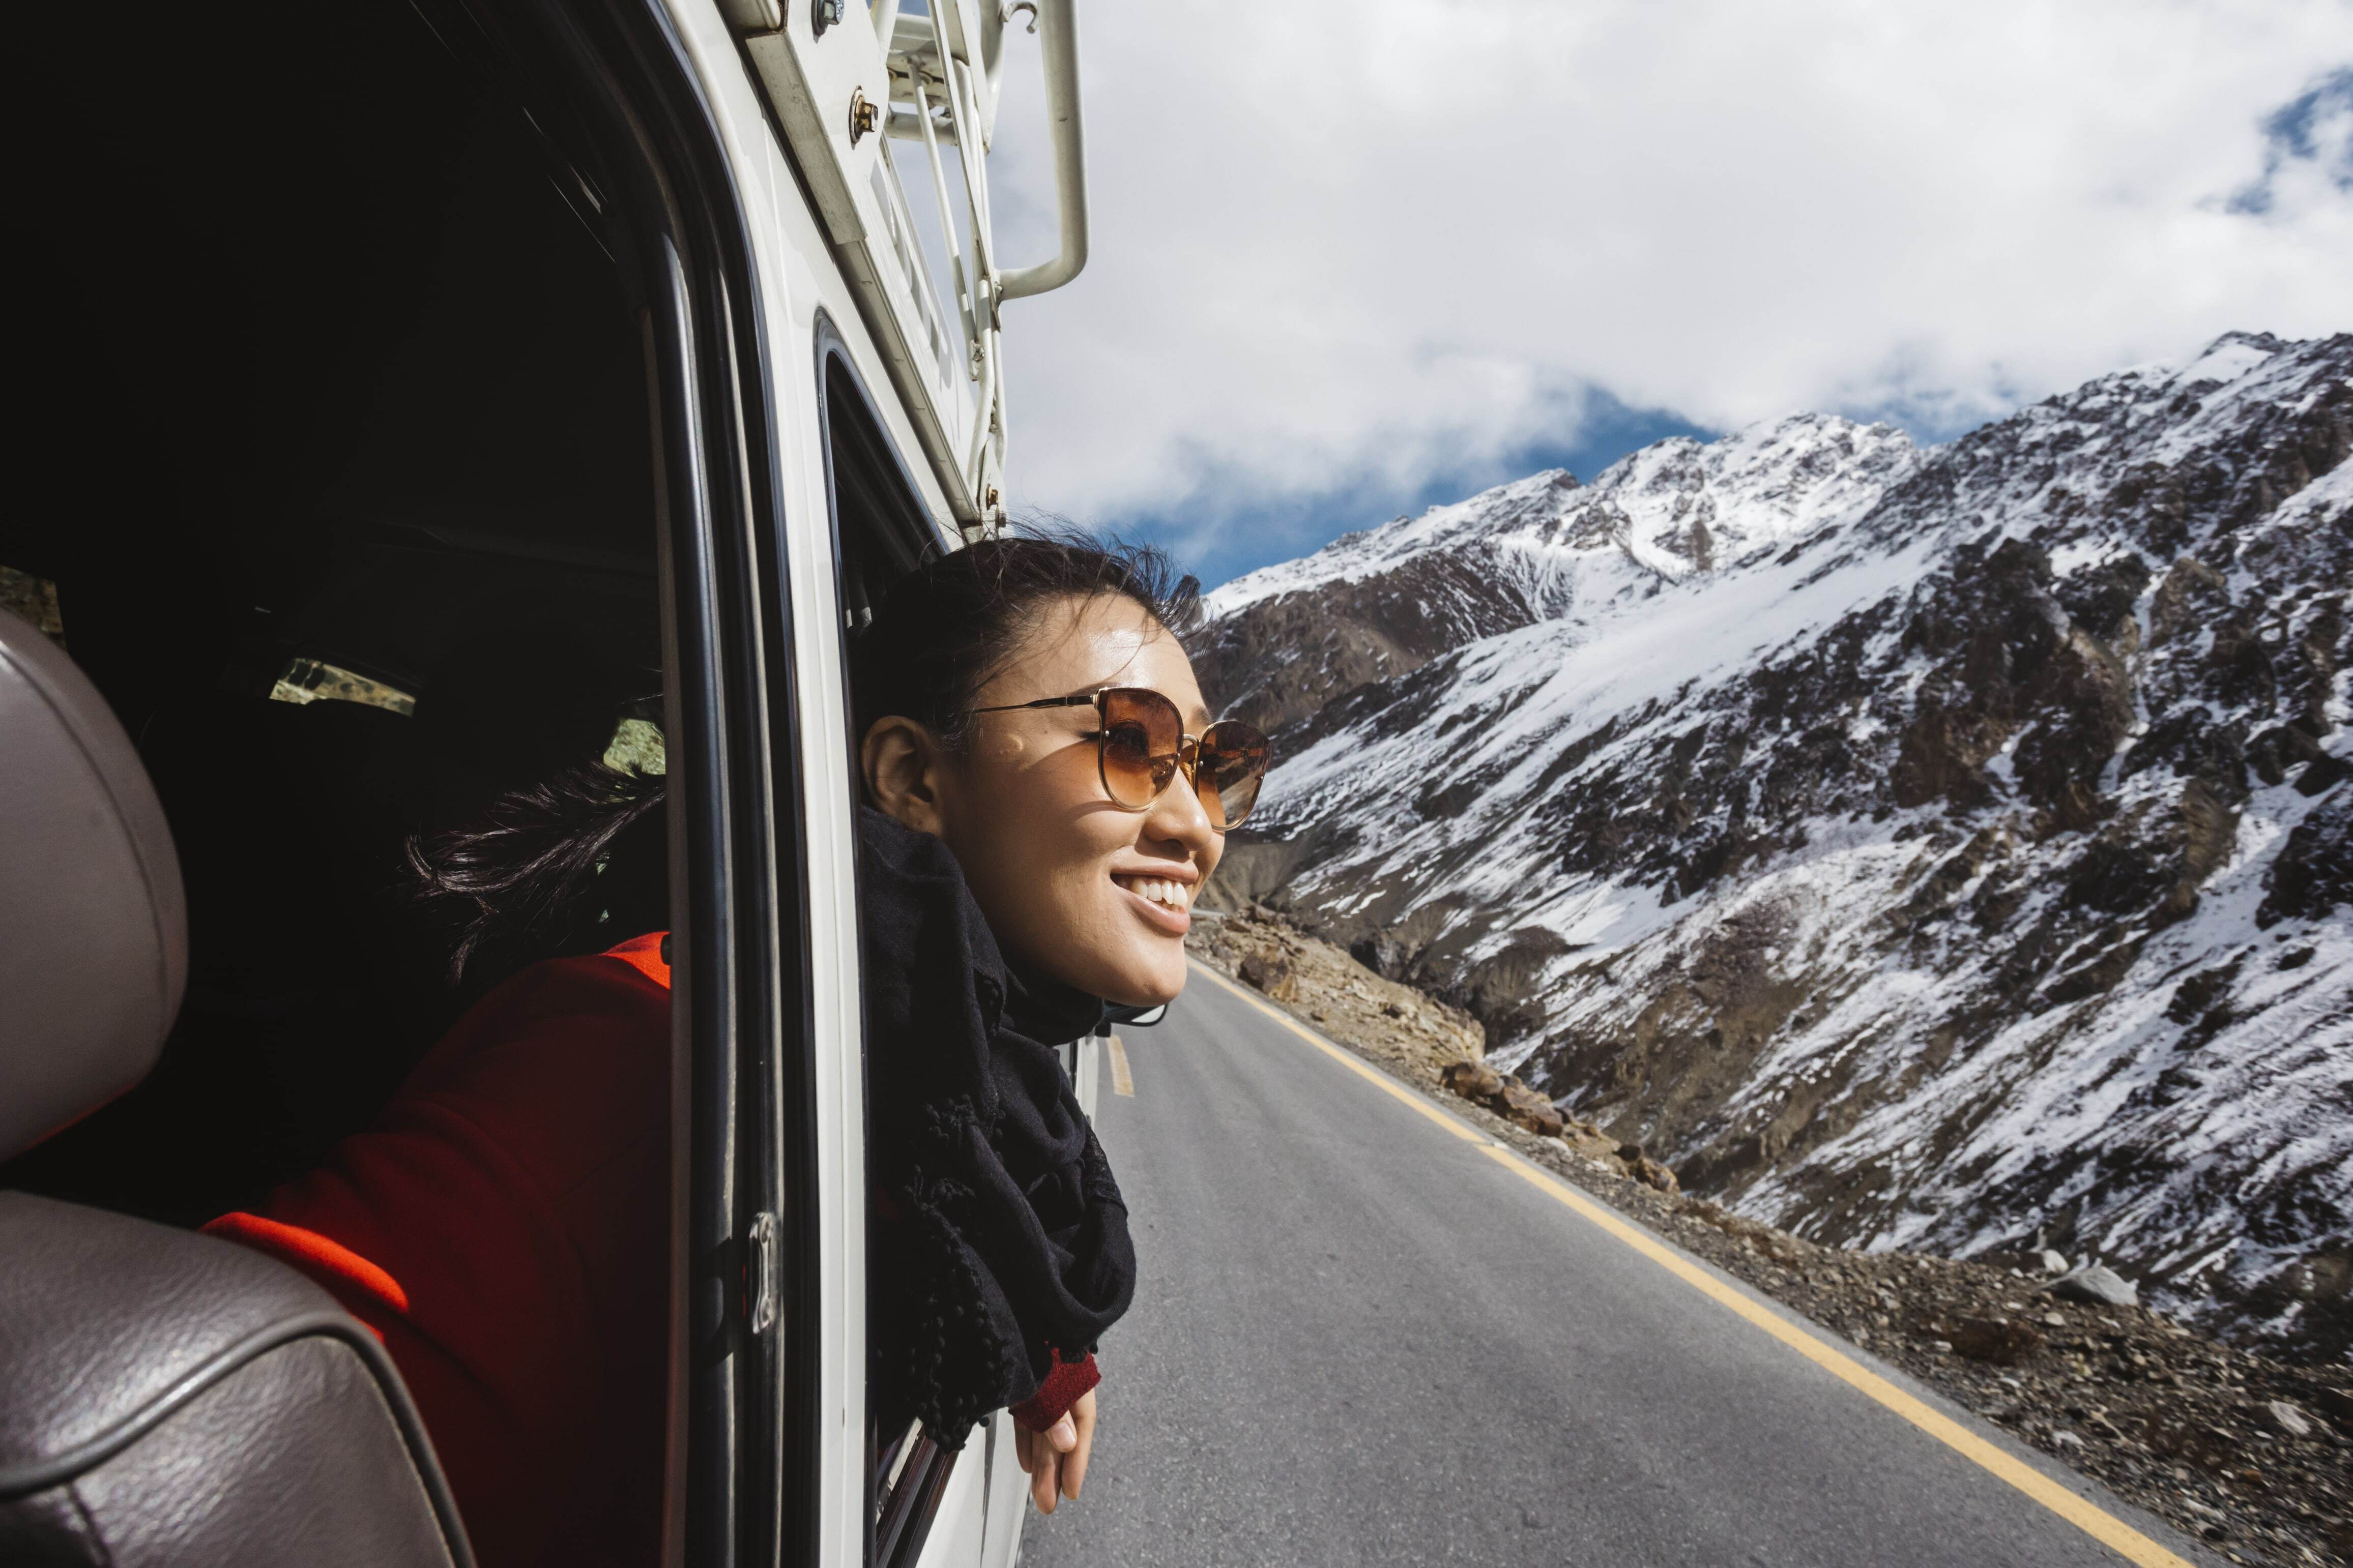 A woman stares at the landscape around her in a van with sunglasses on while smiling.jpg